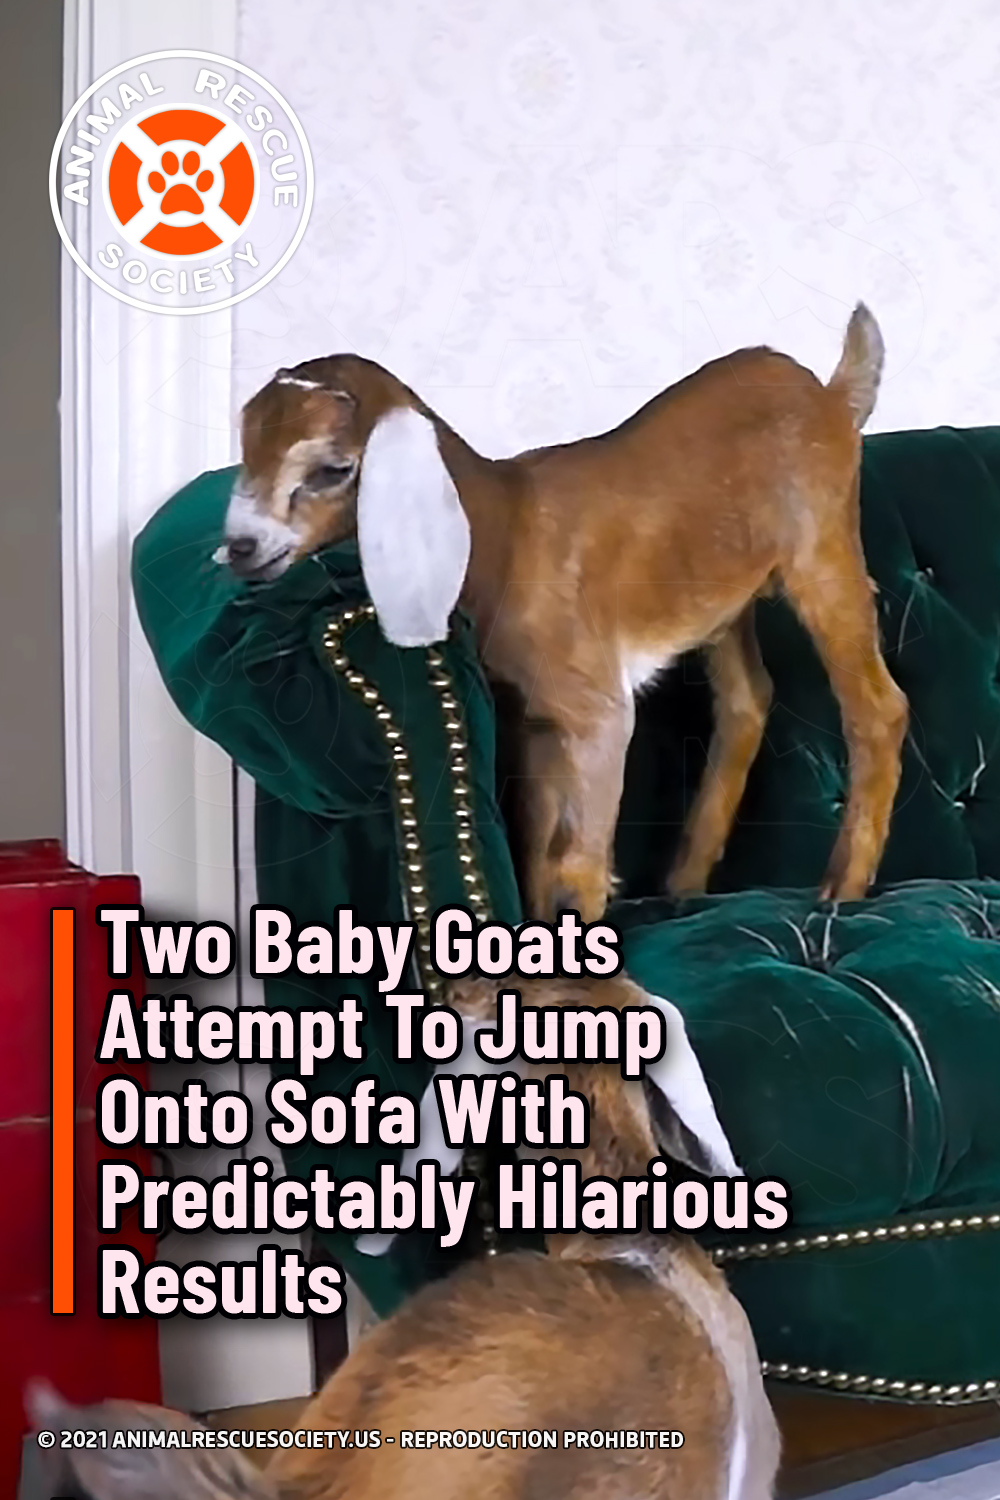 Two Baby Goats Attempt To Jump Onto Sofa With Predictably Hilarious Results